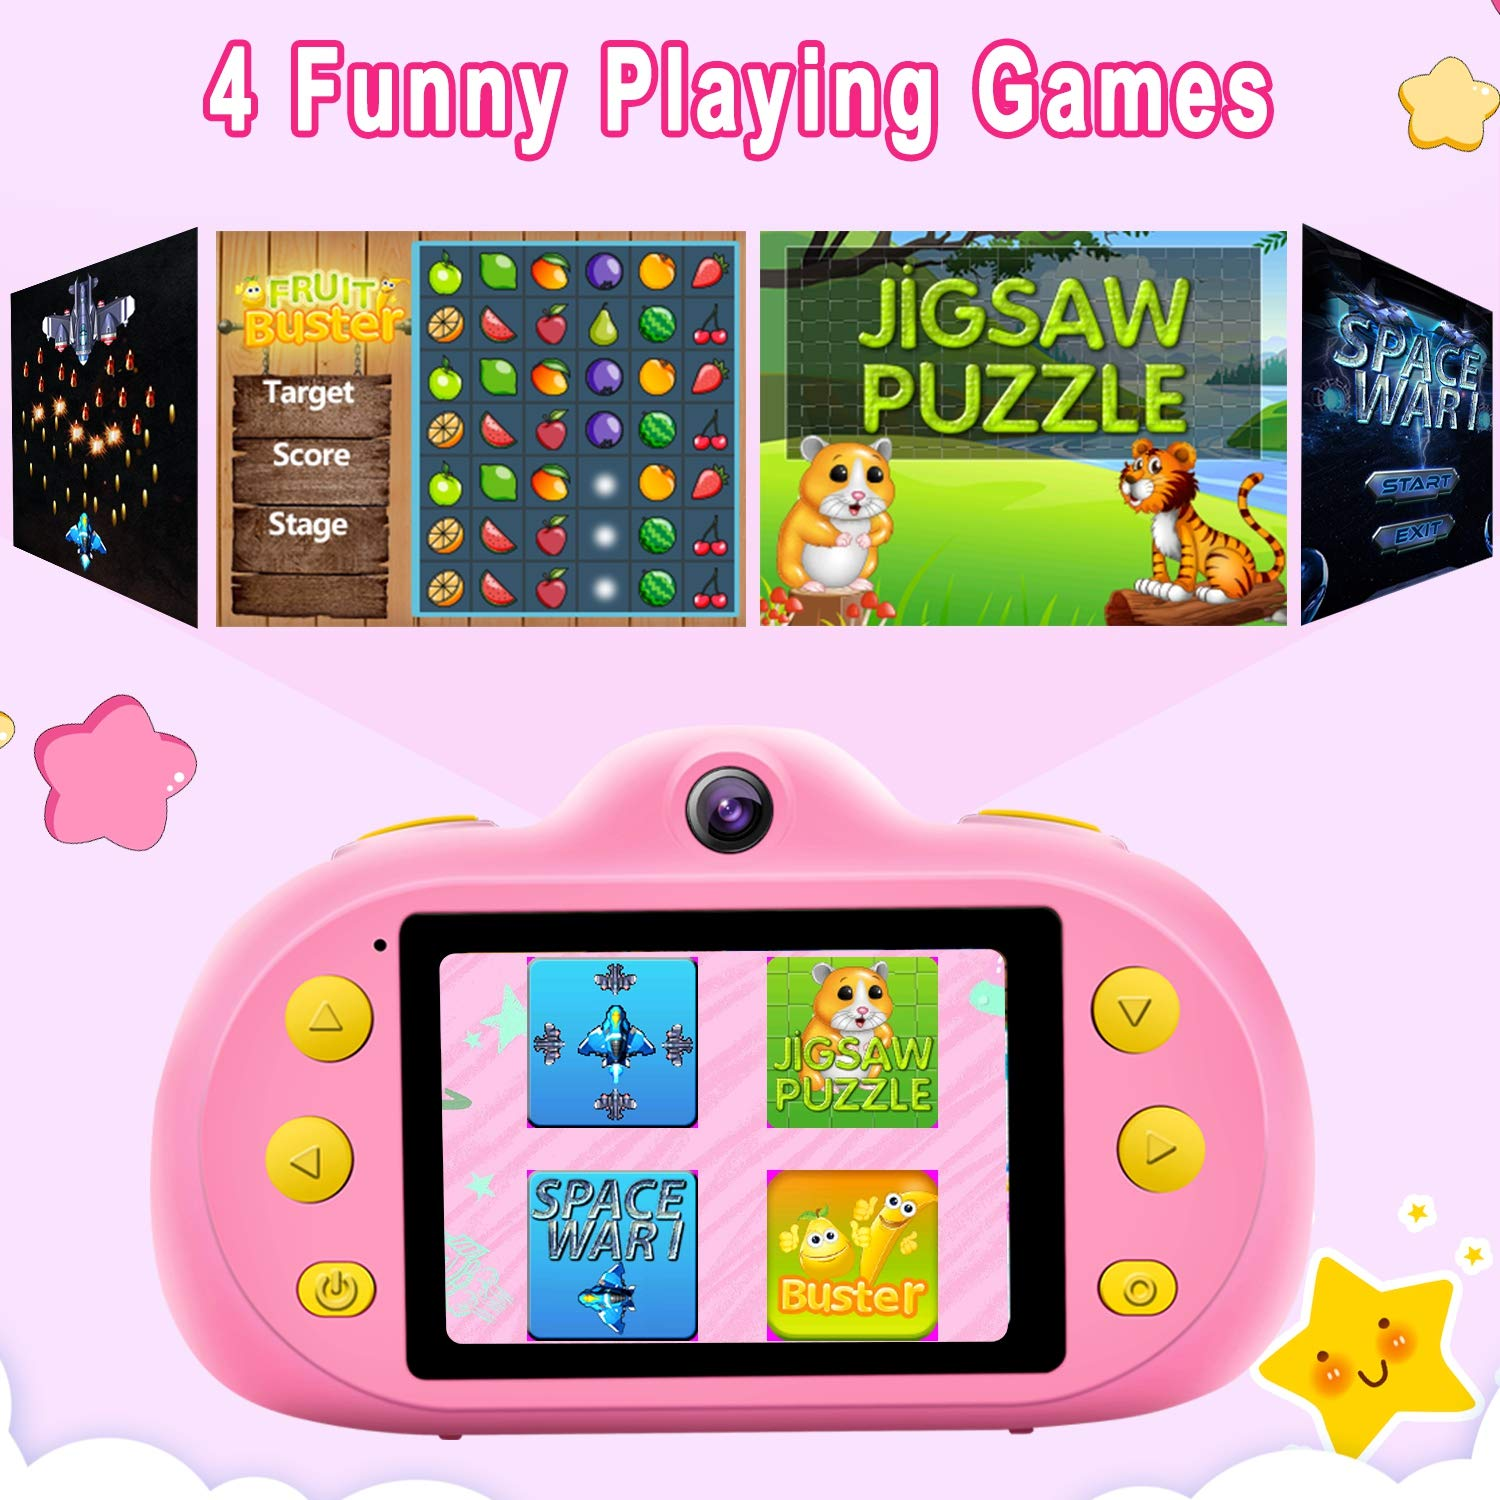 GBD [NEW] Kids Camera Toys for Boys Girls,12MP HD 1080P Selfie Video Camera with MP3 Player Games DUAL Lens, 2.4'' Digital Camcorder Recorder Back to School Birthday Gift,(Free 16GB Memory Card) (Pink) by GBD (Image #5)